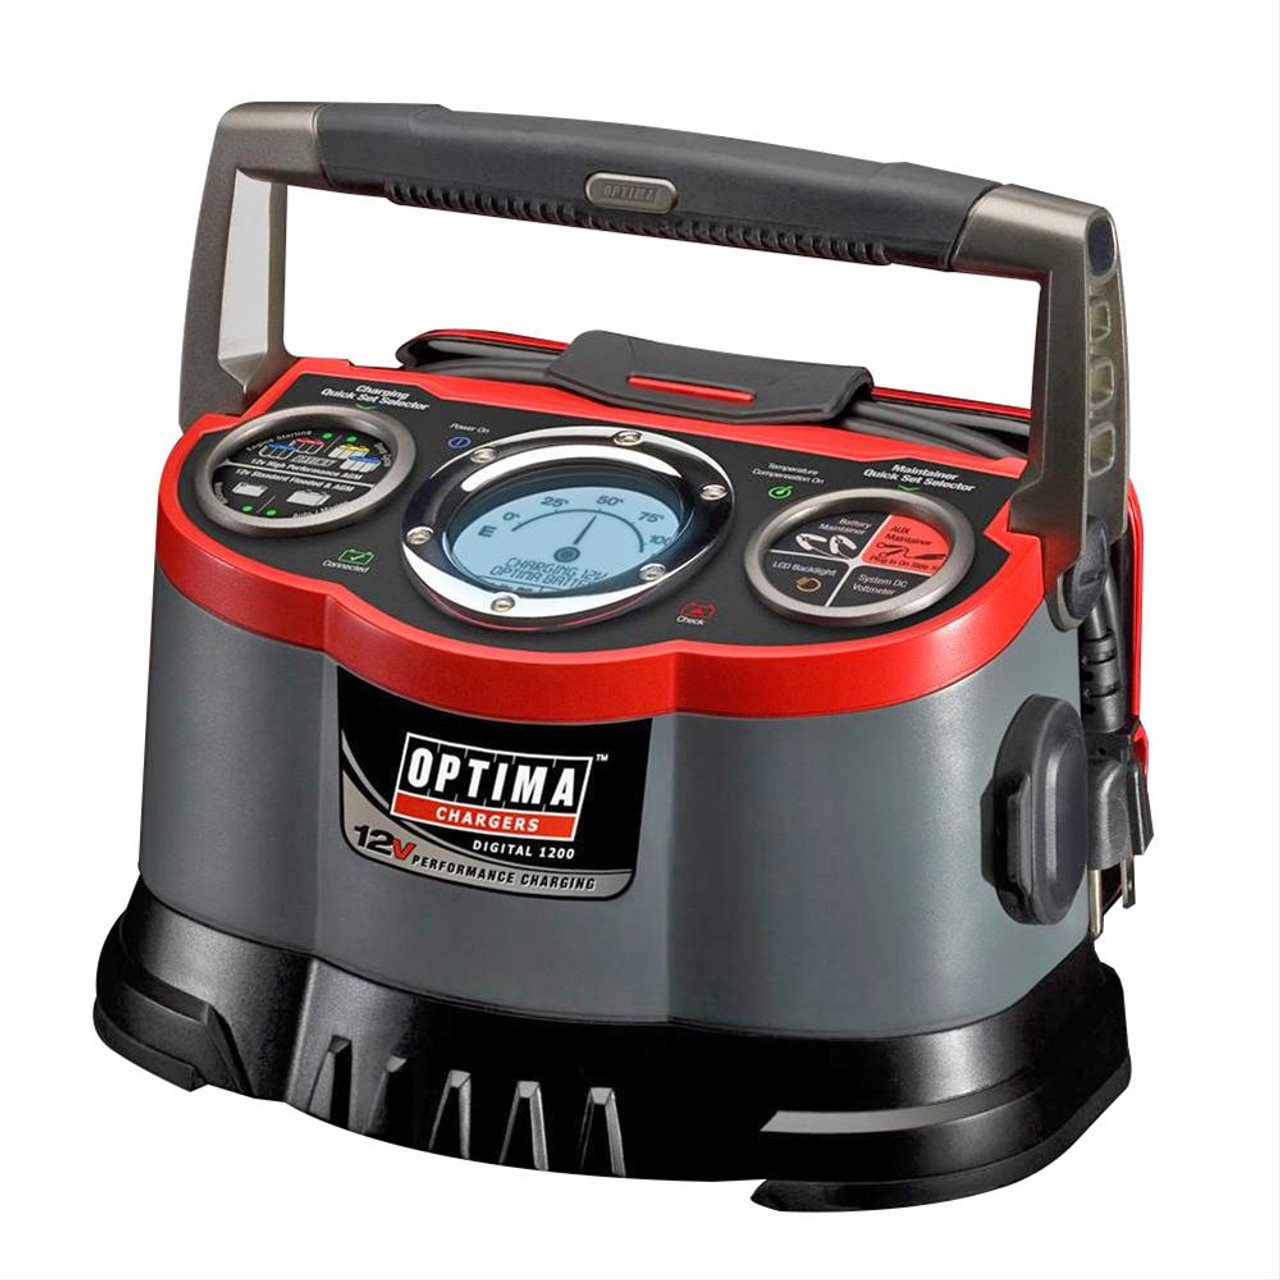 Optima Batteries Digital 1200 12 Volt Battery Charger 150-34178 150-33508 FREE SHIPPING